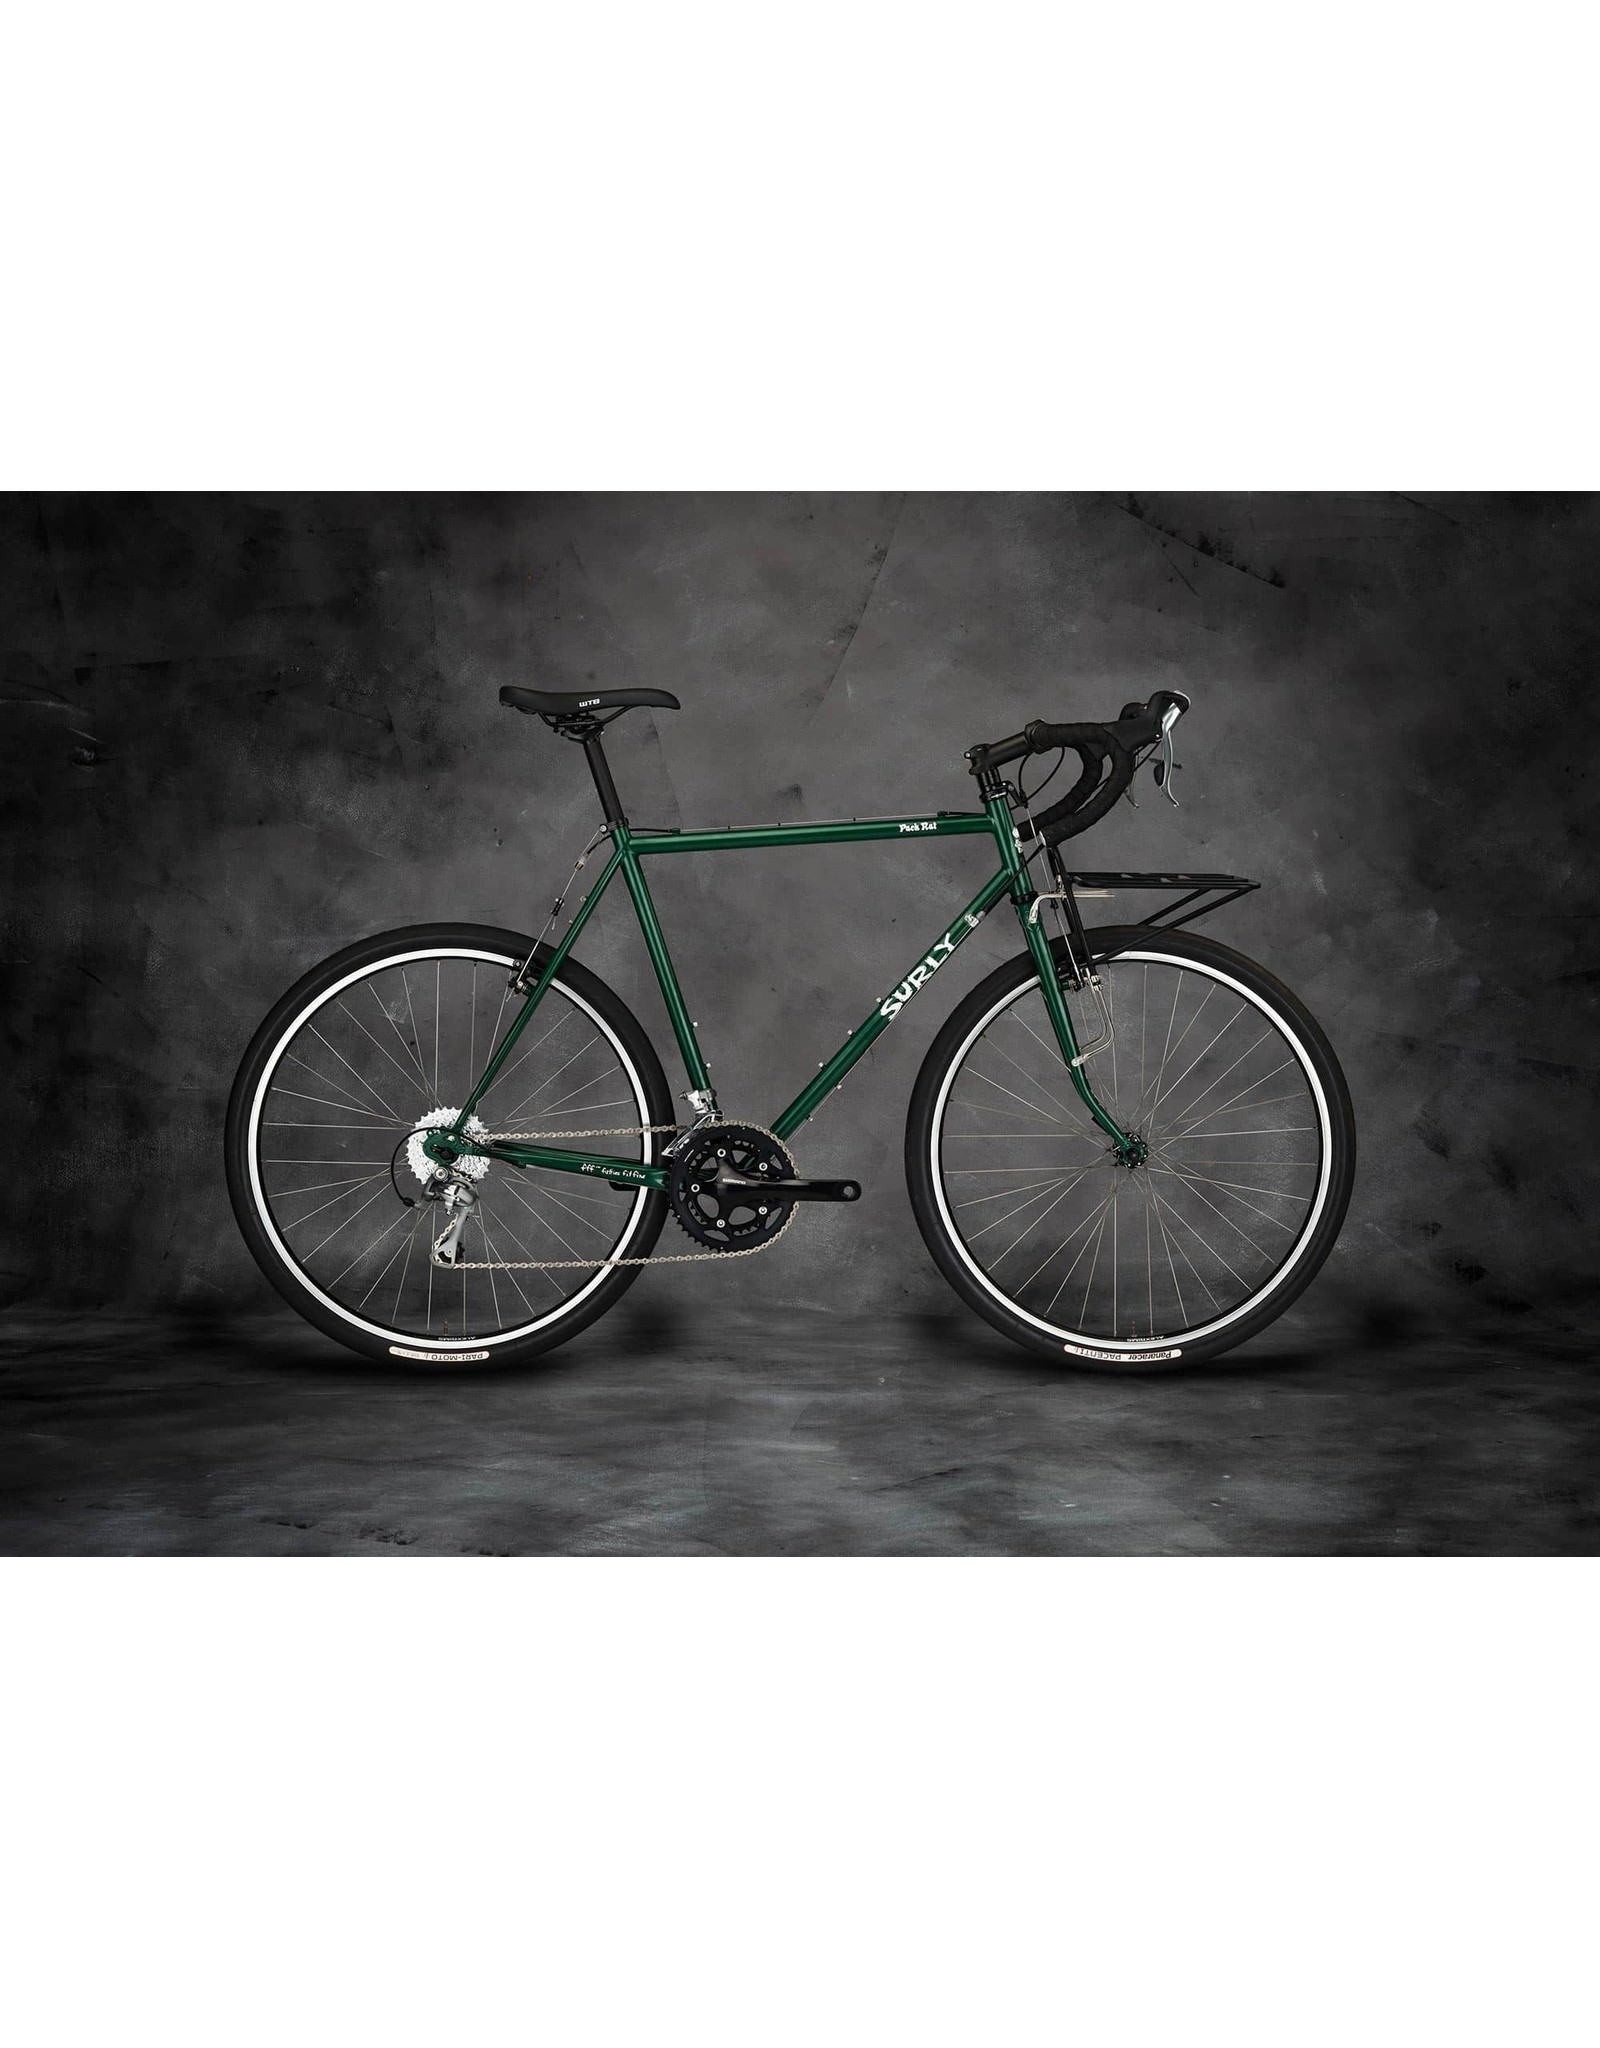 Surly Pack Rat Bike 46cm Get in Green